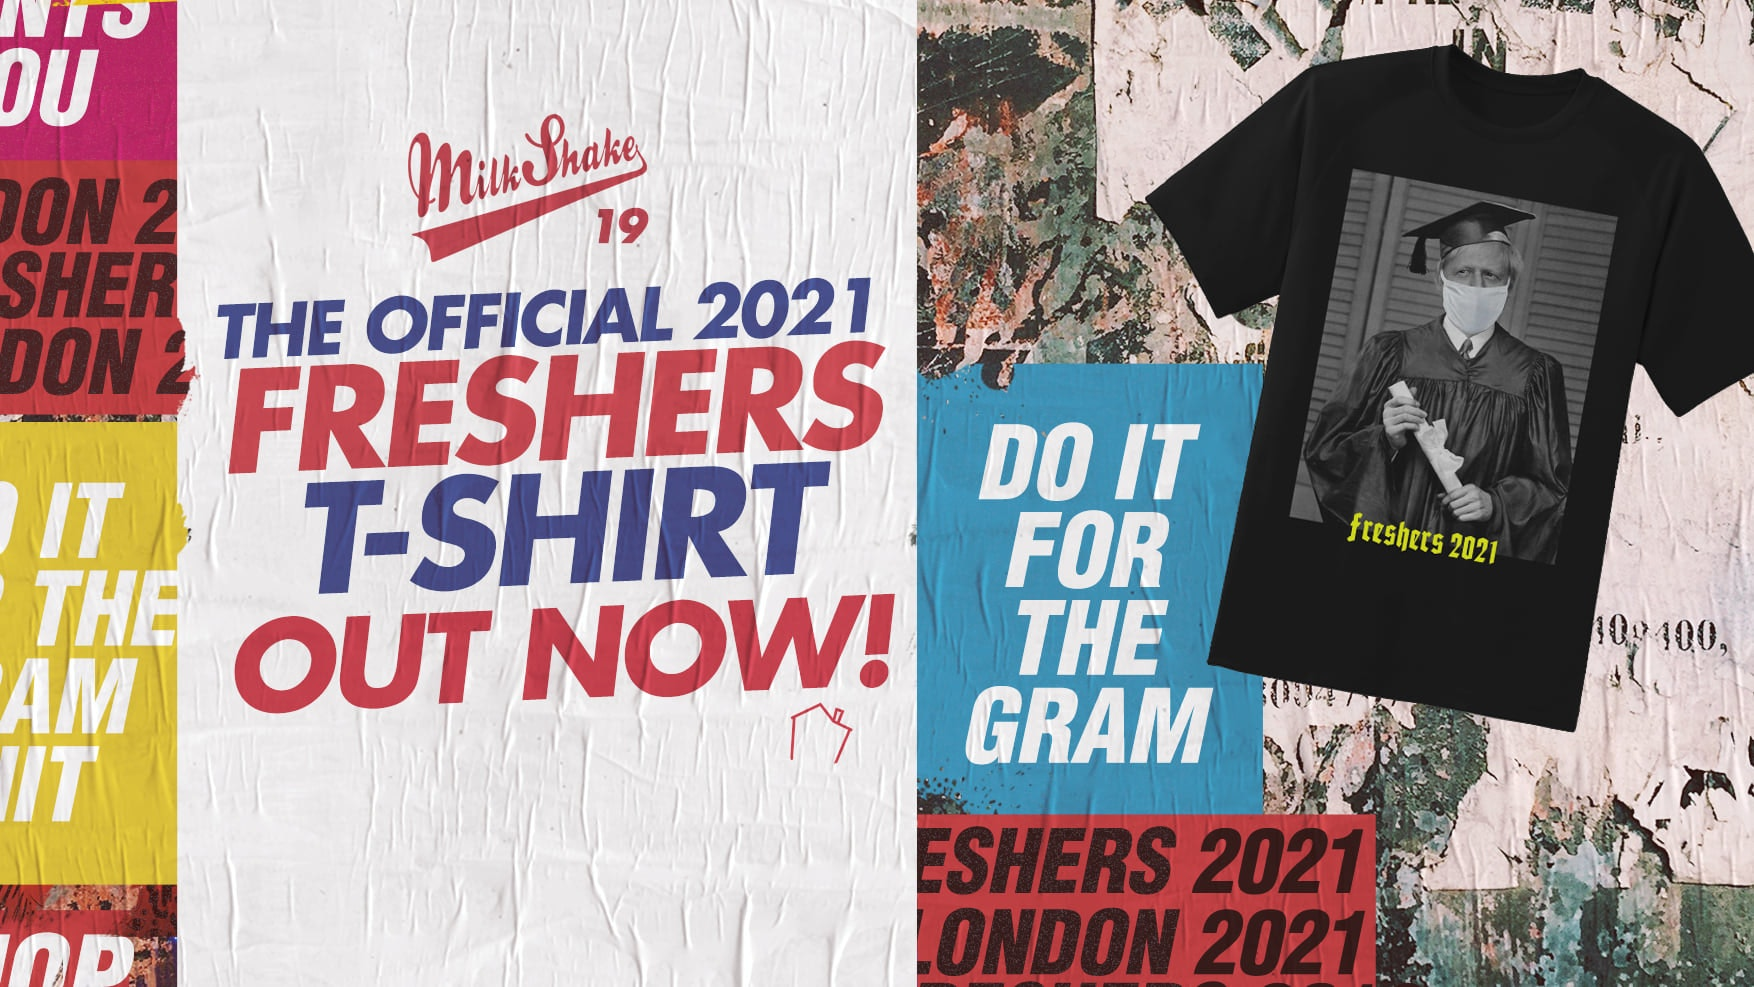 The London Freshers T-Shirt 2021 – Purchase Yours Now!